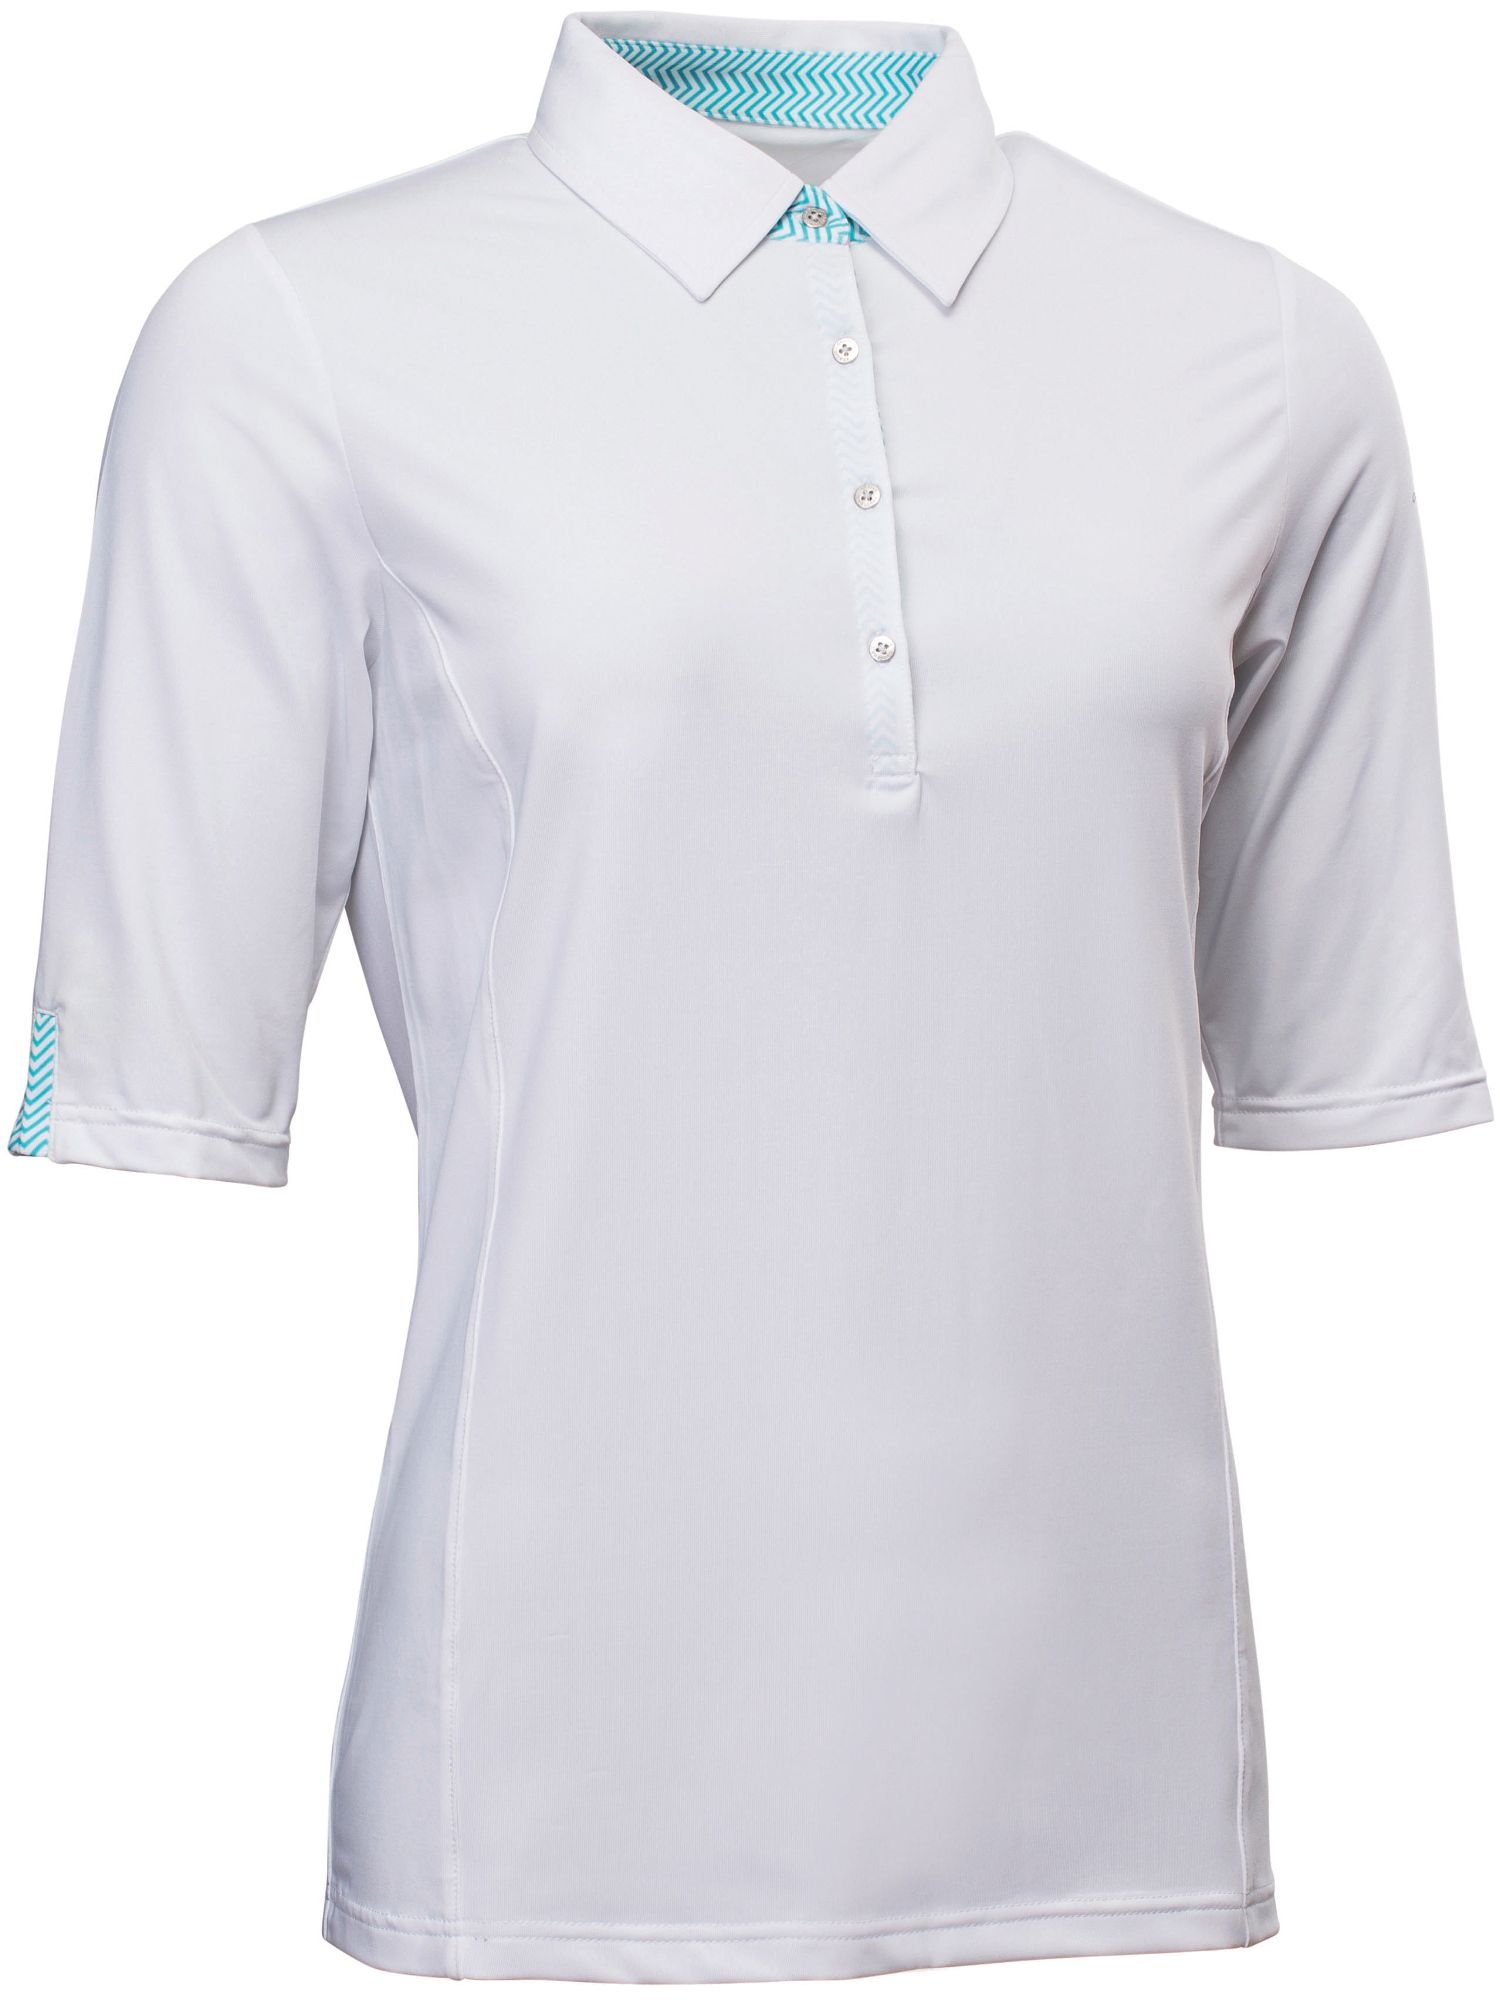 Abacus Karin 1/2 Sleeve Polo, White